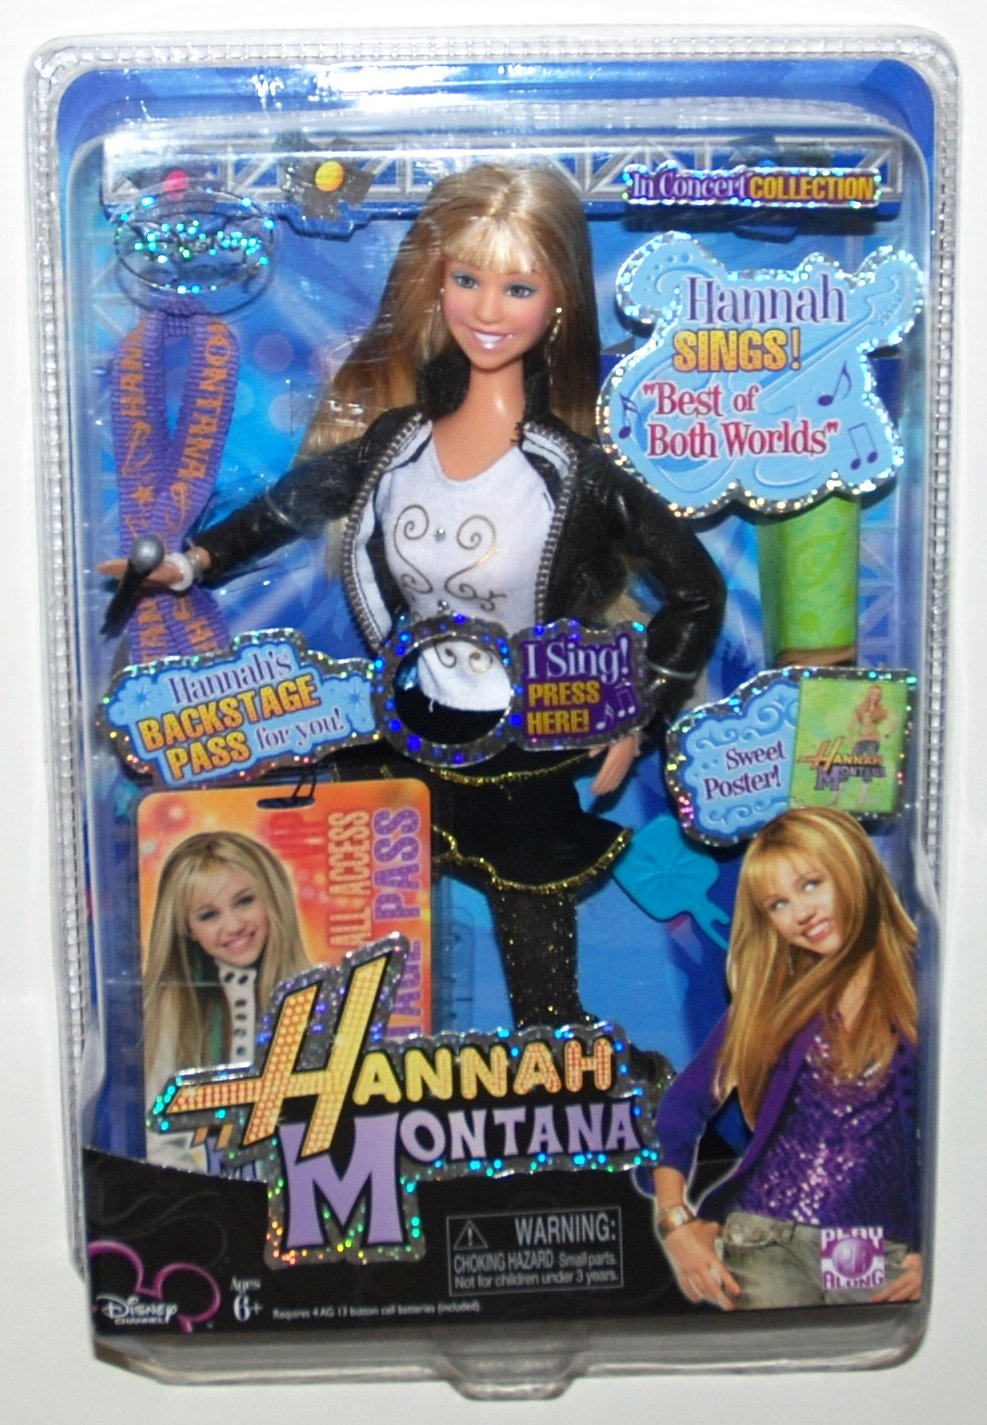 Hannah Montana - In Concert Collection - 'Best of Both Worlds' Play Along 687203200415 CHAR-HANM-DOLL-BEST_OF_BOTH_WORLDS_SINGI